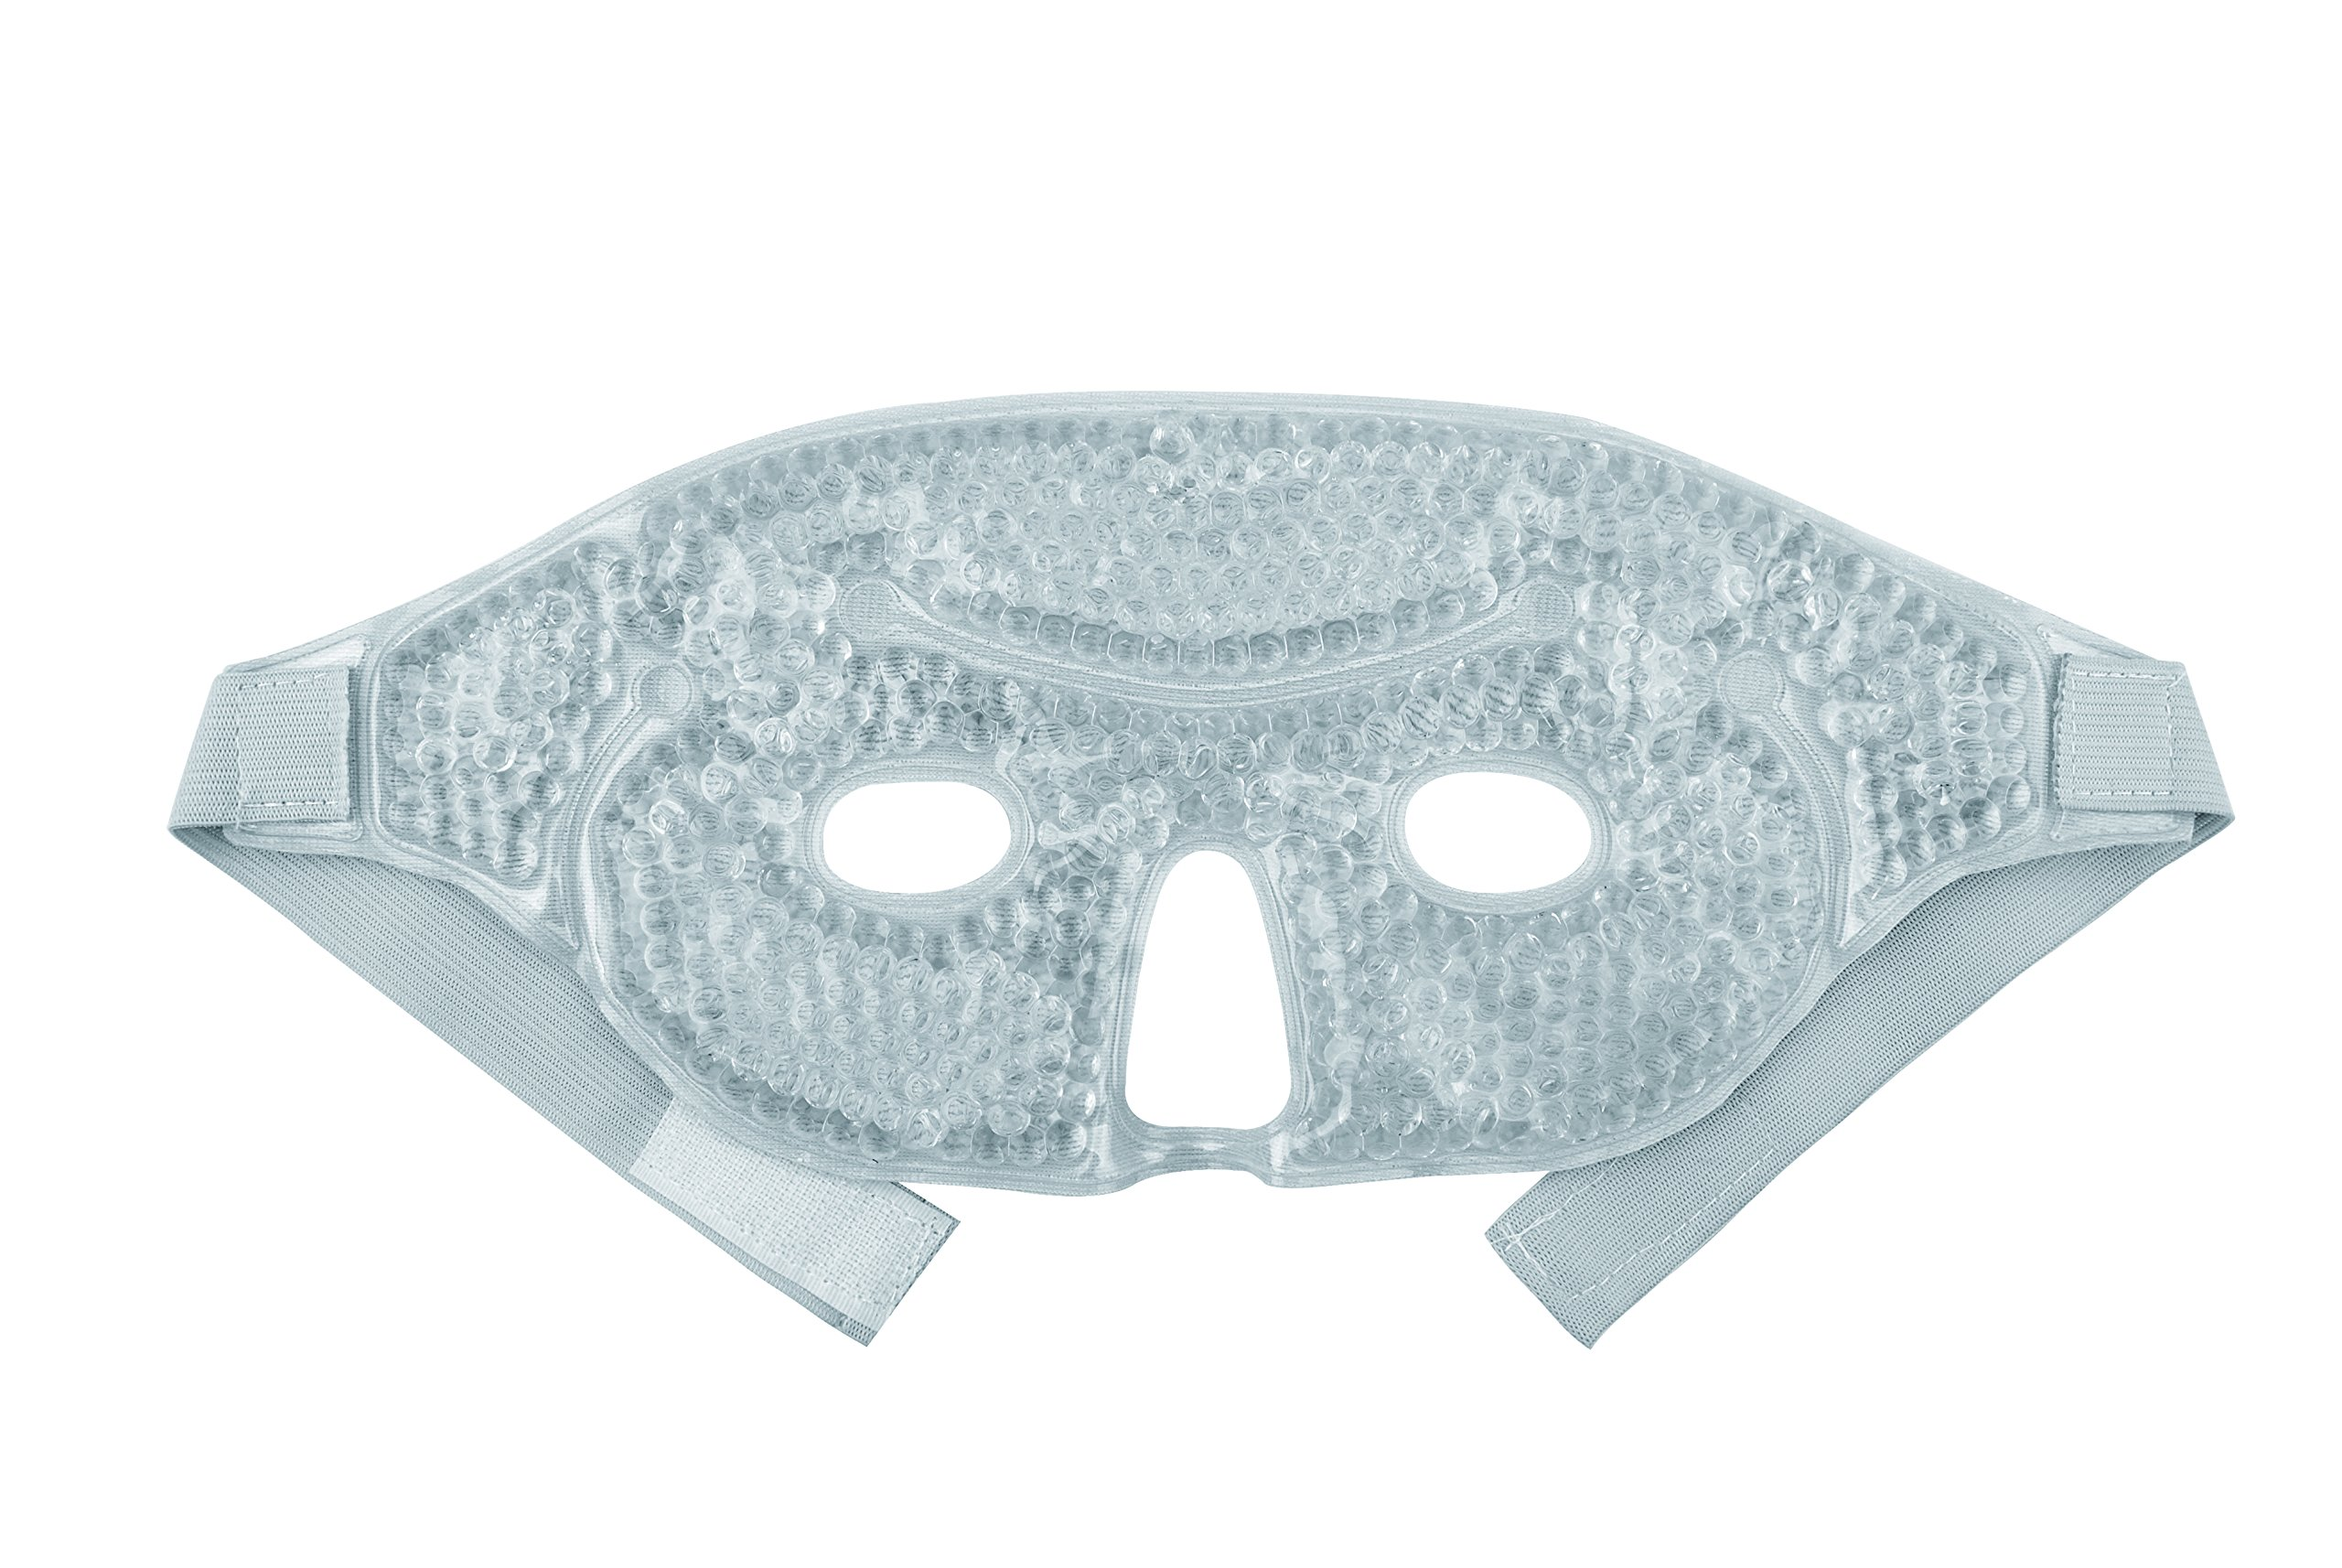 Hot and Cold Therapy Gel Bead Facial Eye Mask by FOMI Care | Ice Mask for Migraine Headache, Stress Relief | Reduces Eyes Puffiness, Dark Circles | Fabric Back | Freezable, Microwavable (Gray) by FOMI (Image #2)